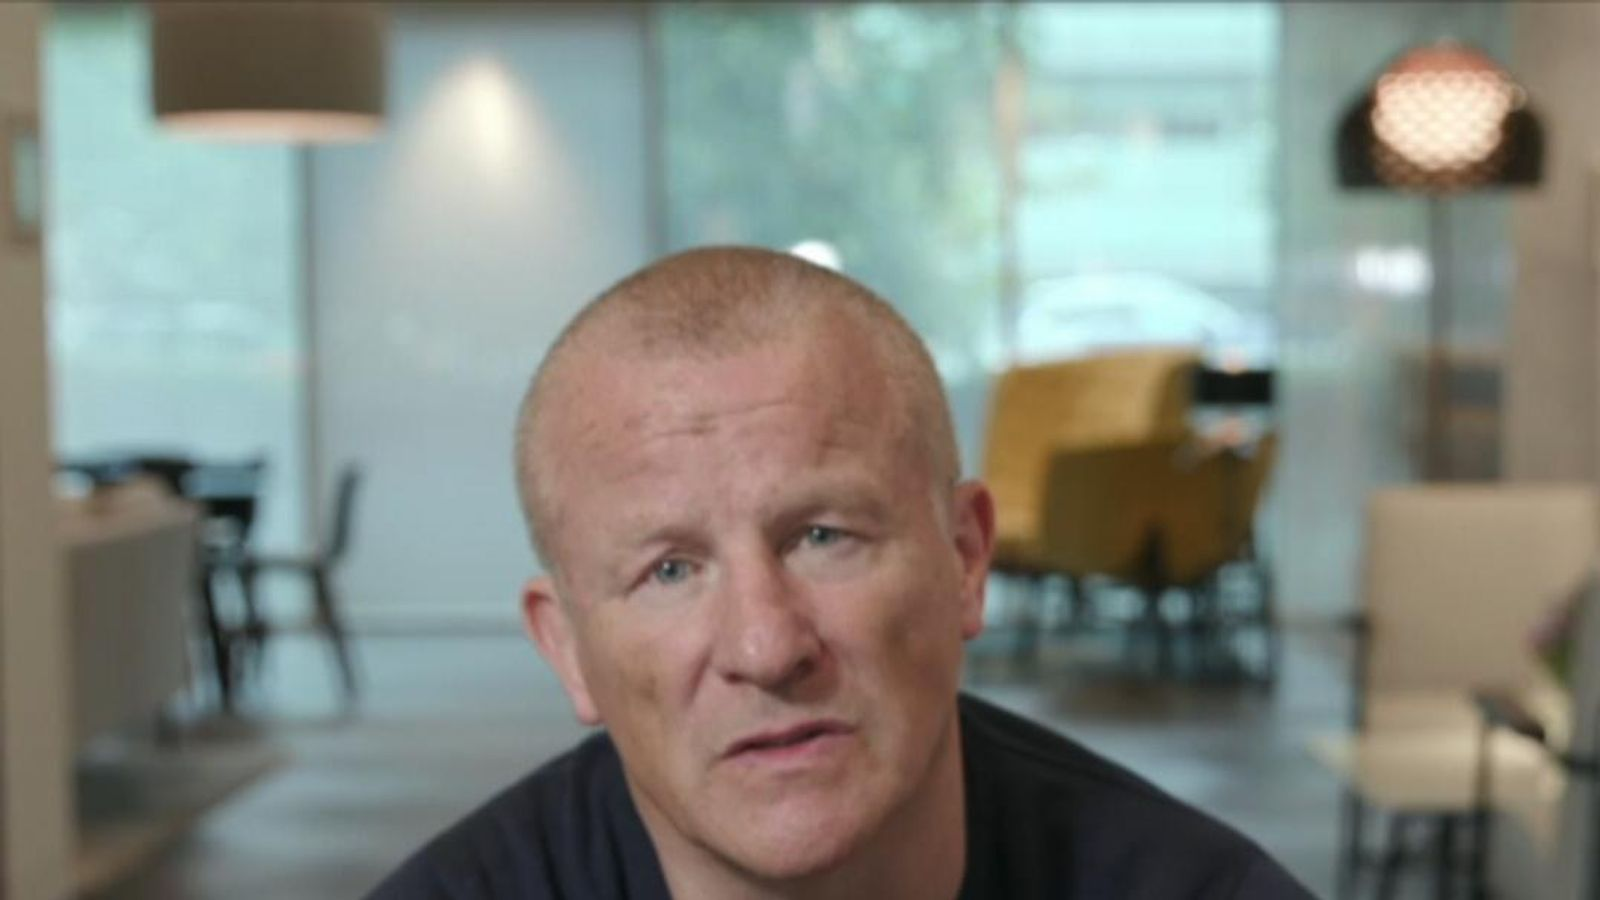 Woodford investors in line for £225m from biotech sale